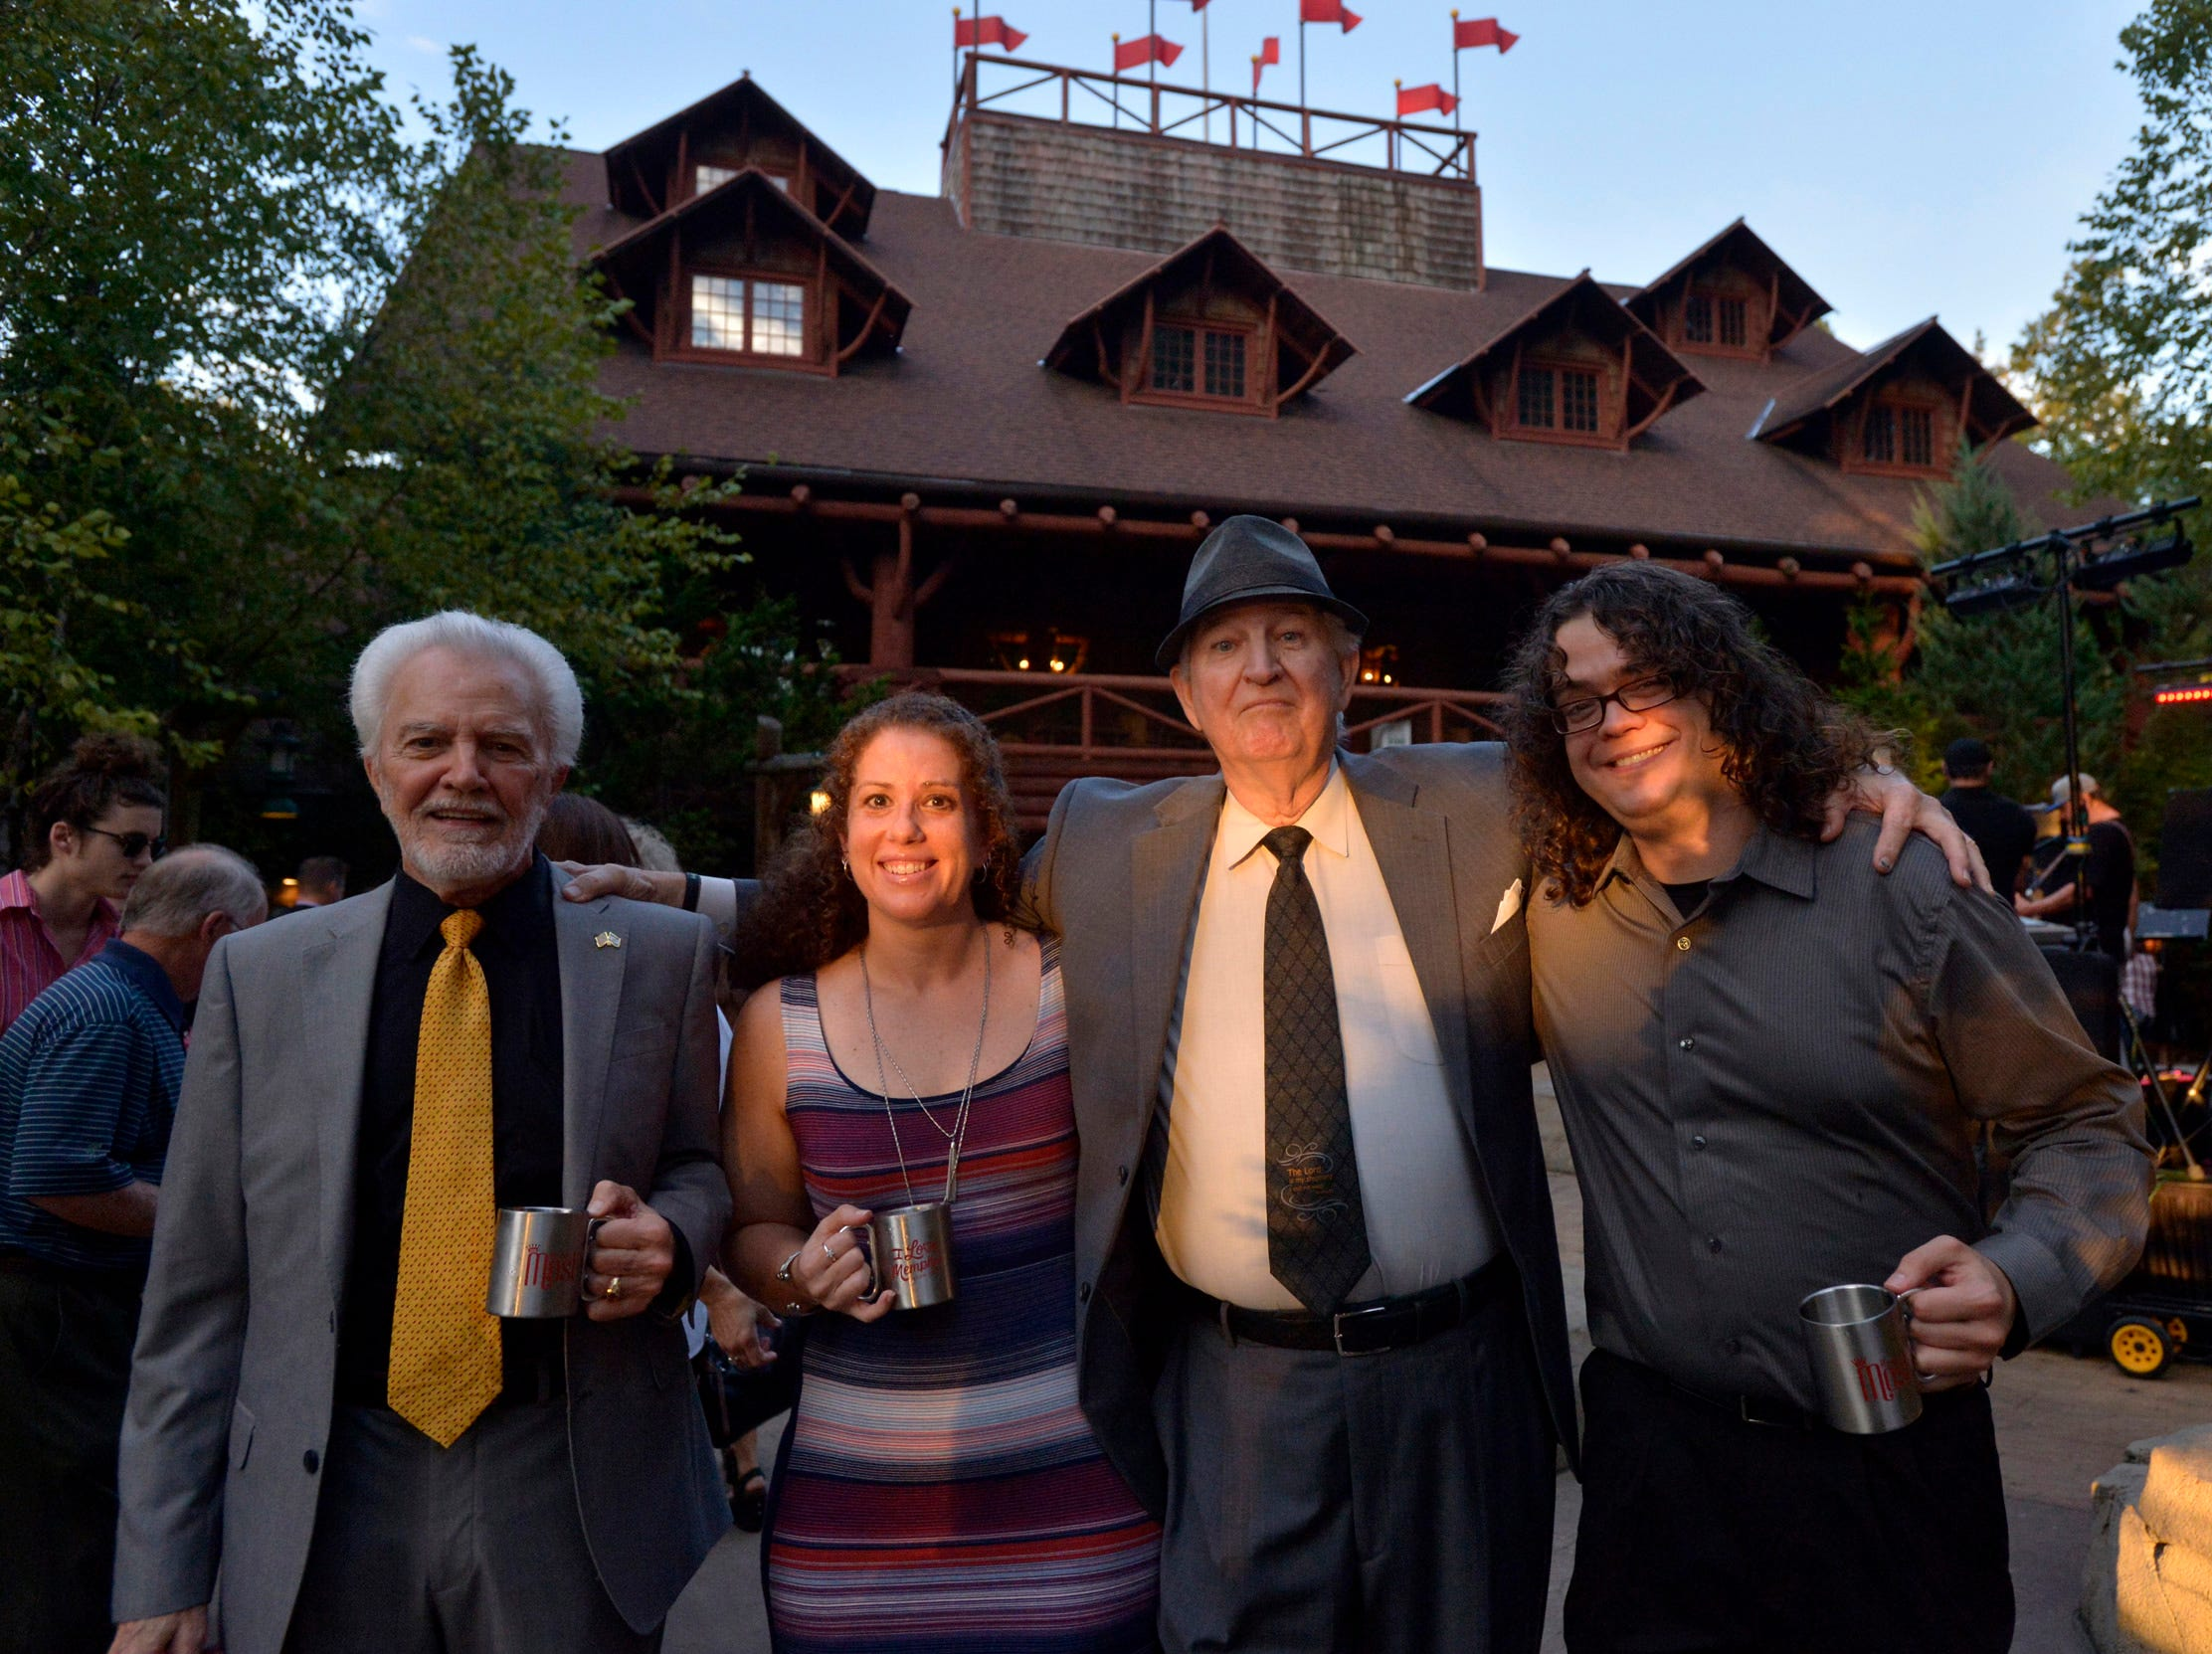 September 13, 2018 - Tops Barbecue representatives, from left, Russ Jordan, Renee Webber, George Montague, and Jonathan Montague pose for a photos during the 2018 Memphis Most awards party at Teton Trek in the Memphis Zoo. (Brandon Dill for The Commercial Appeal)